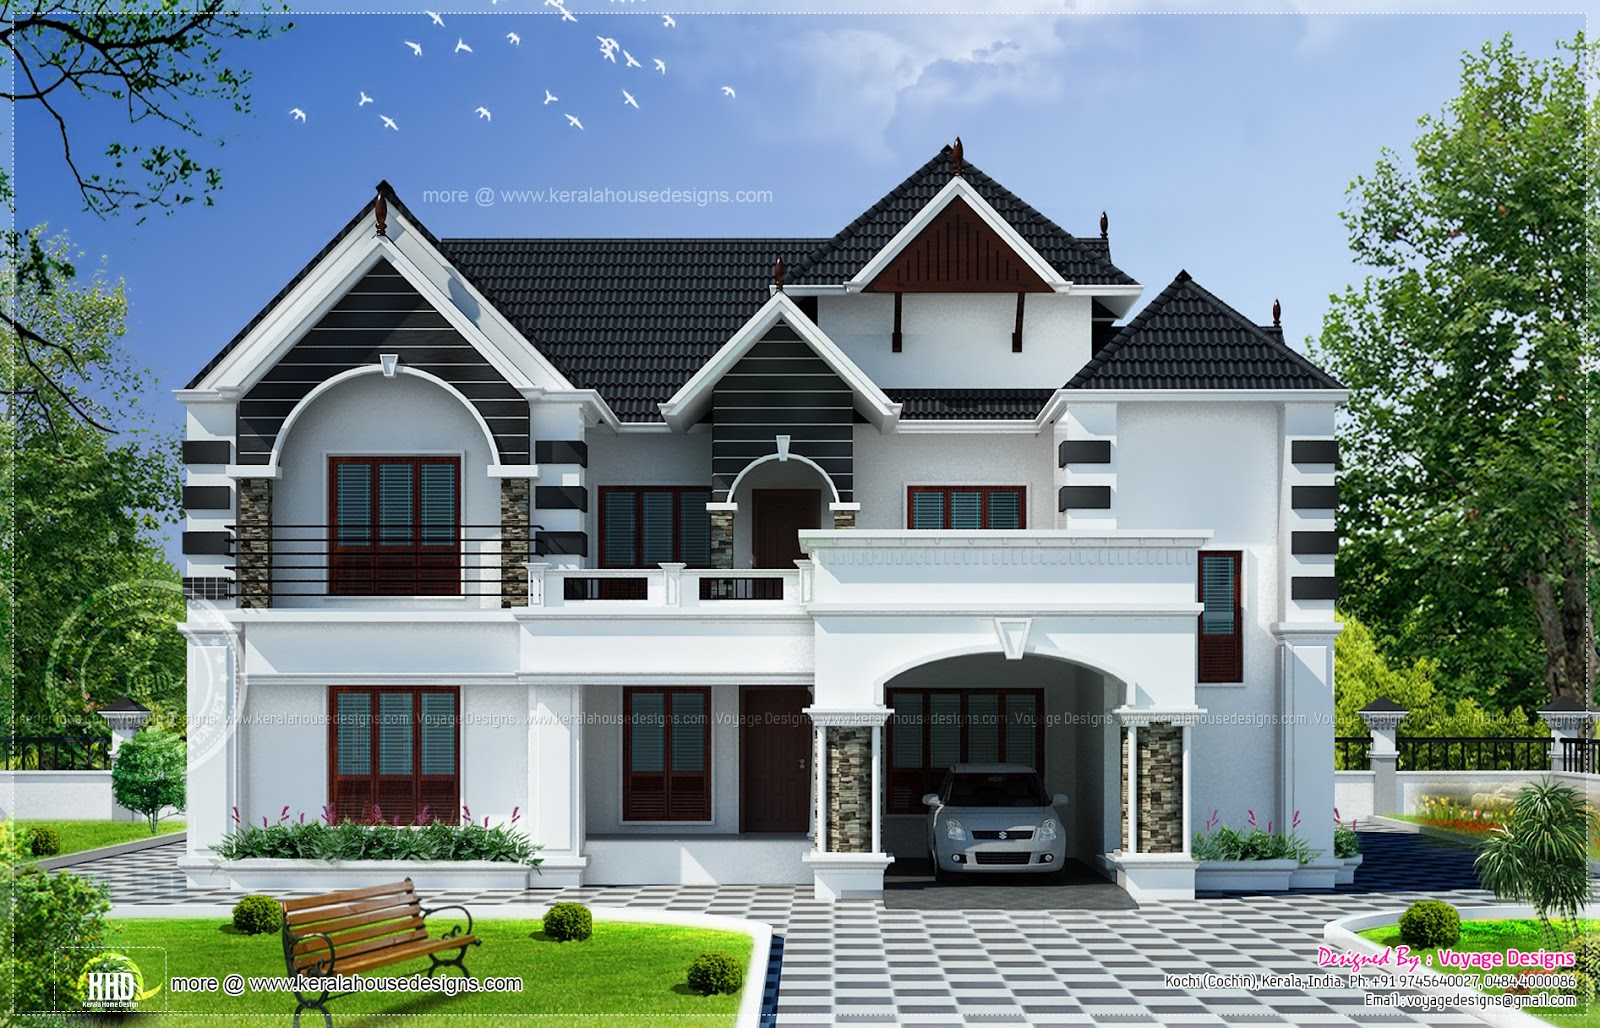 4 bedroom colonial style house kerala home design and Colonial style floor plans